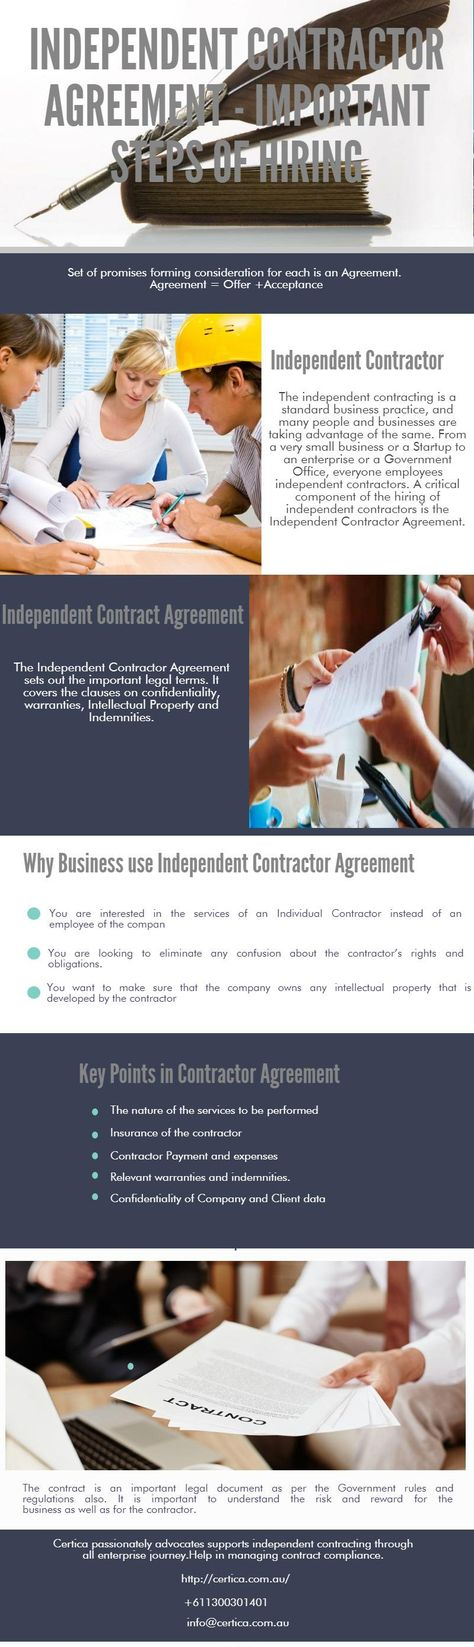 Independent Contractor AgreementImportant Steps Of Hiring